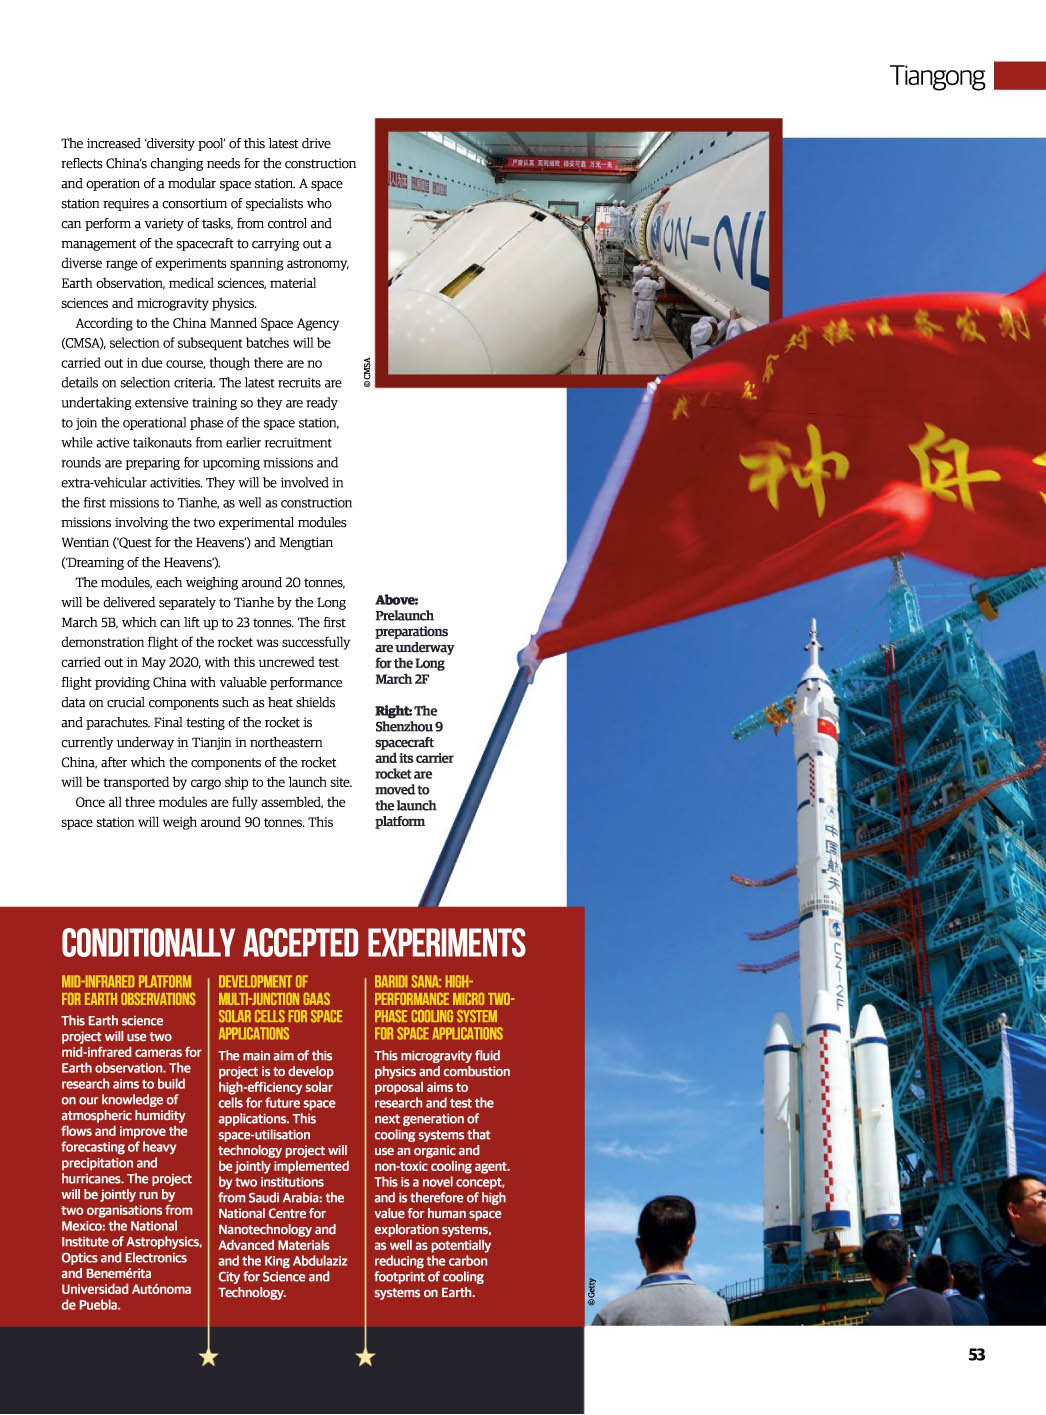 All About Space 116 2021 China Station 03.jpg